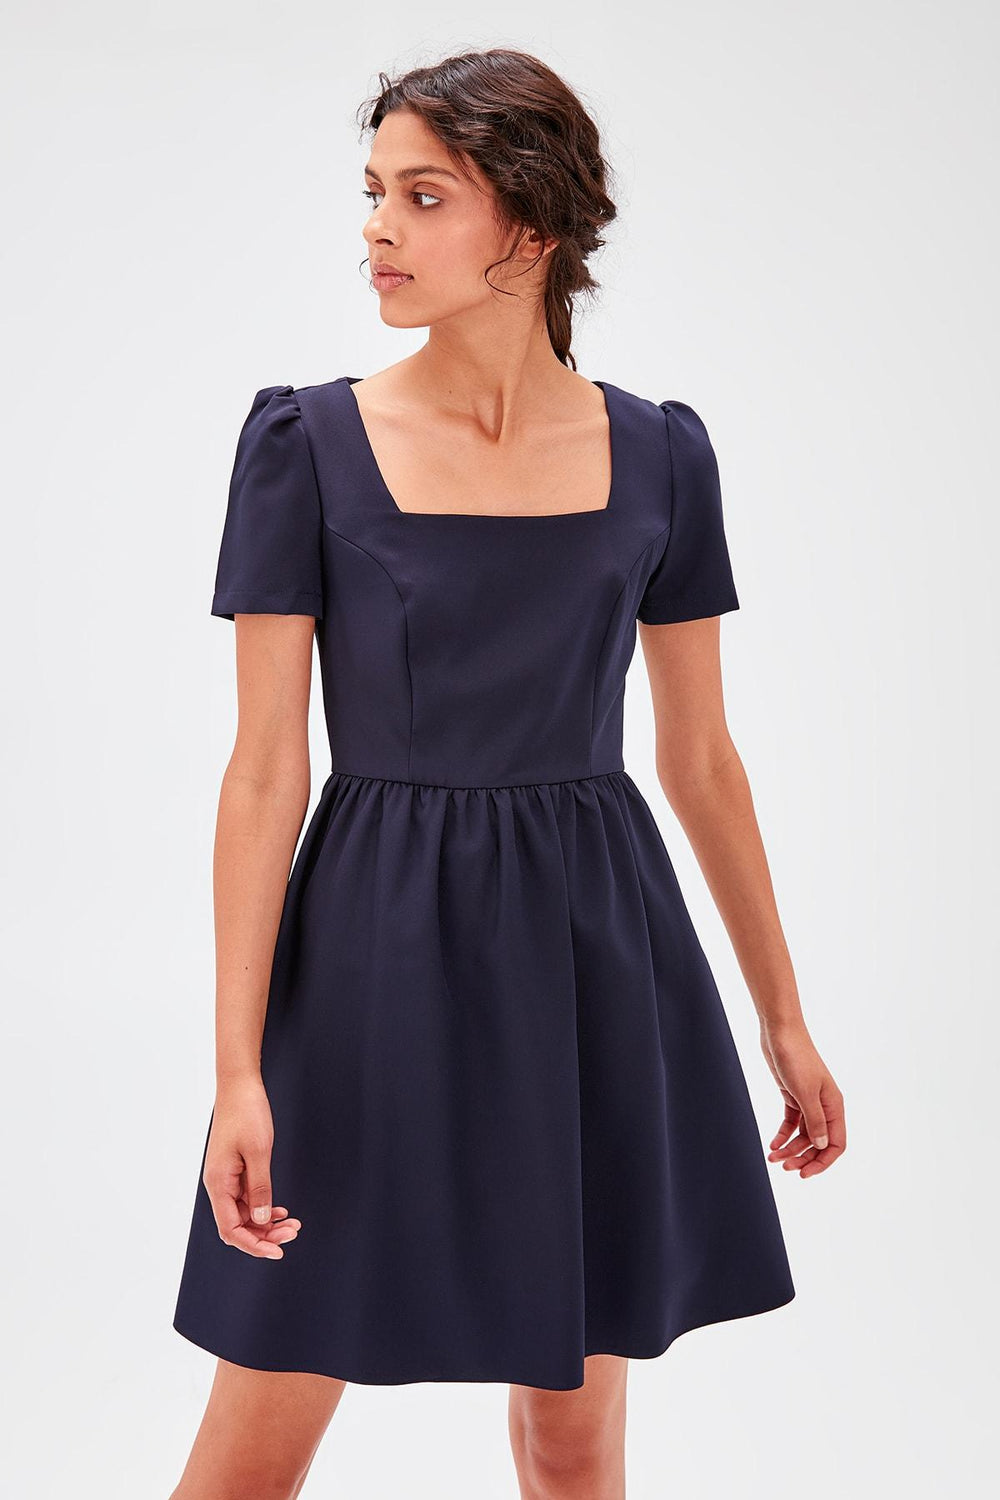 Miss Zut Miss Zut Navy Blue Square Collar Dress Miss Zut &CO